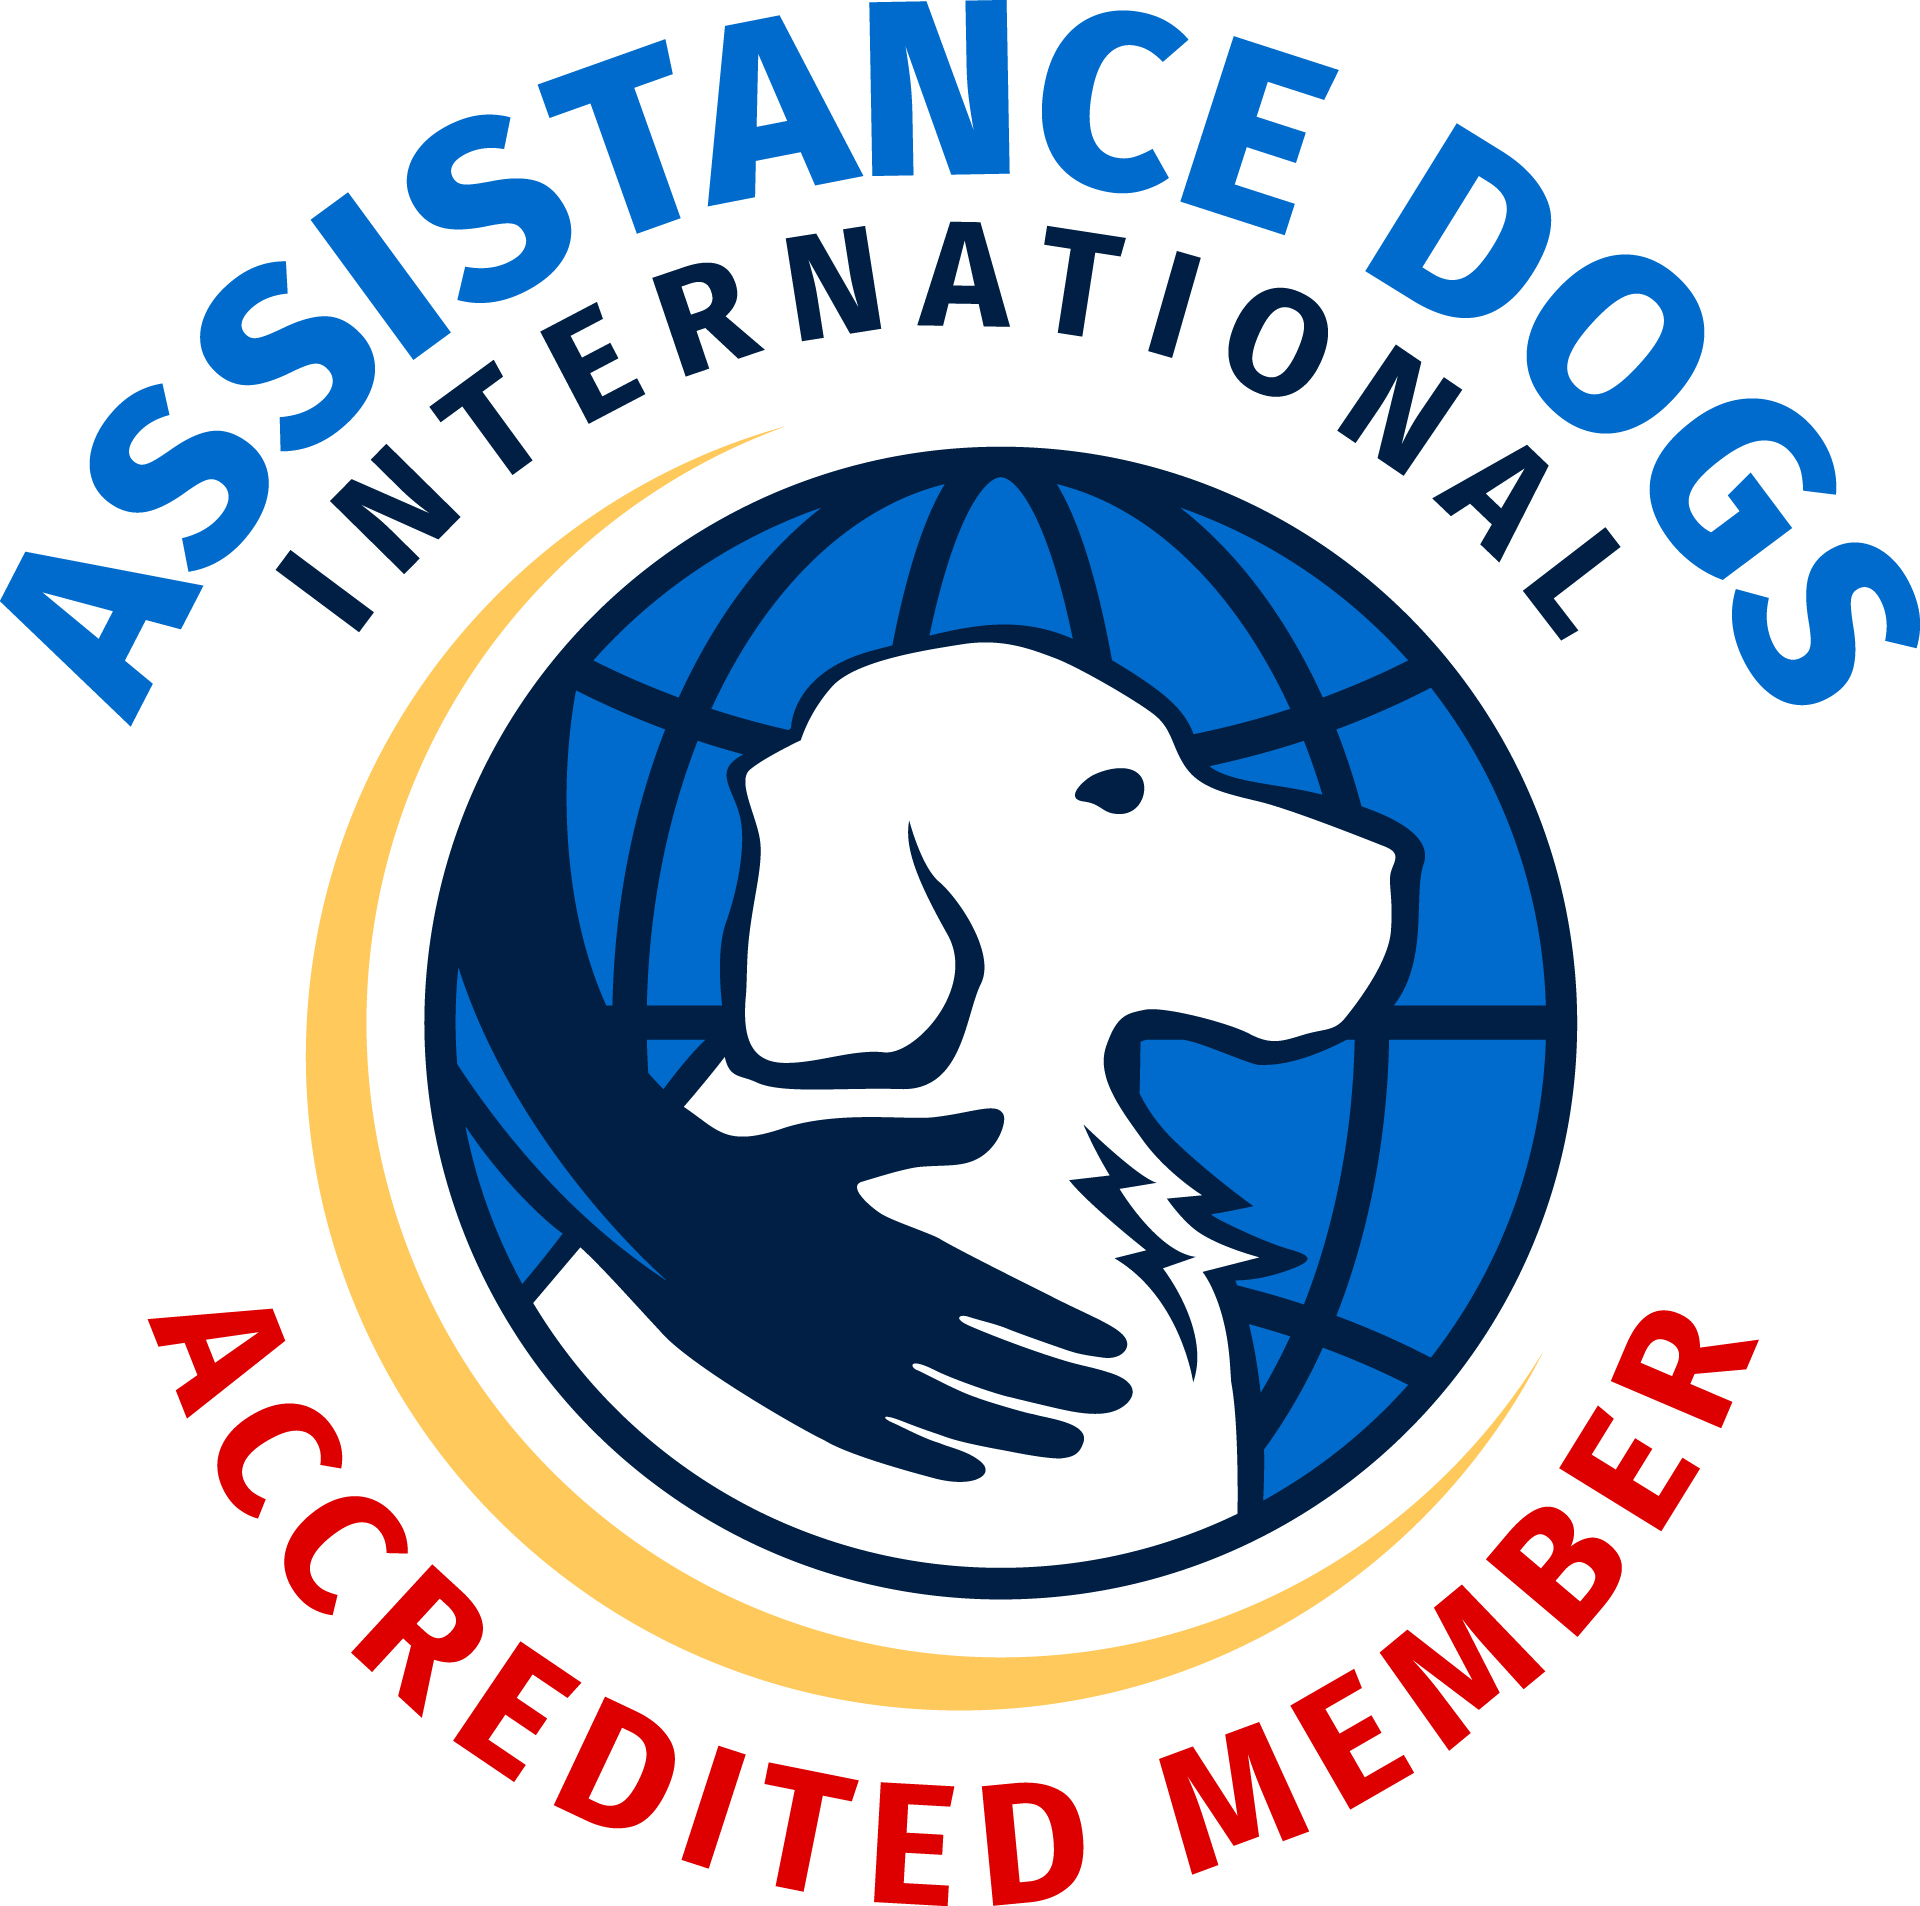 ADI accredited circle logo